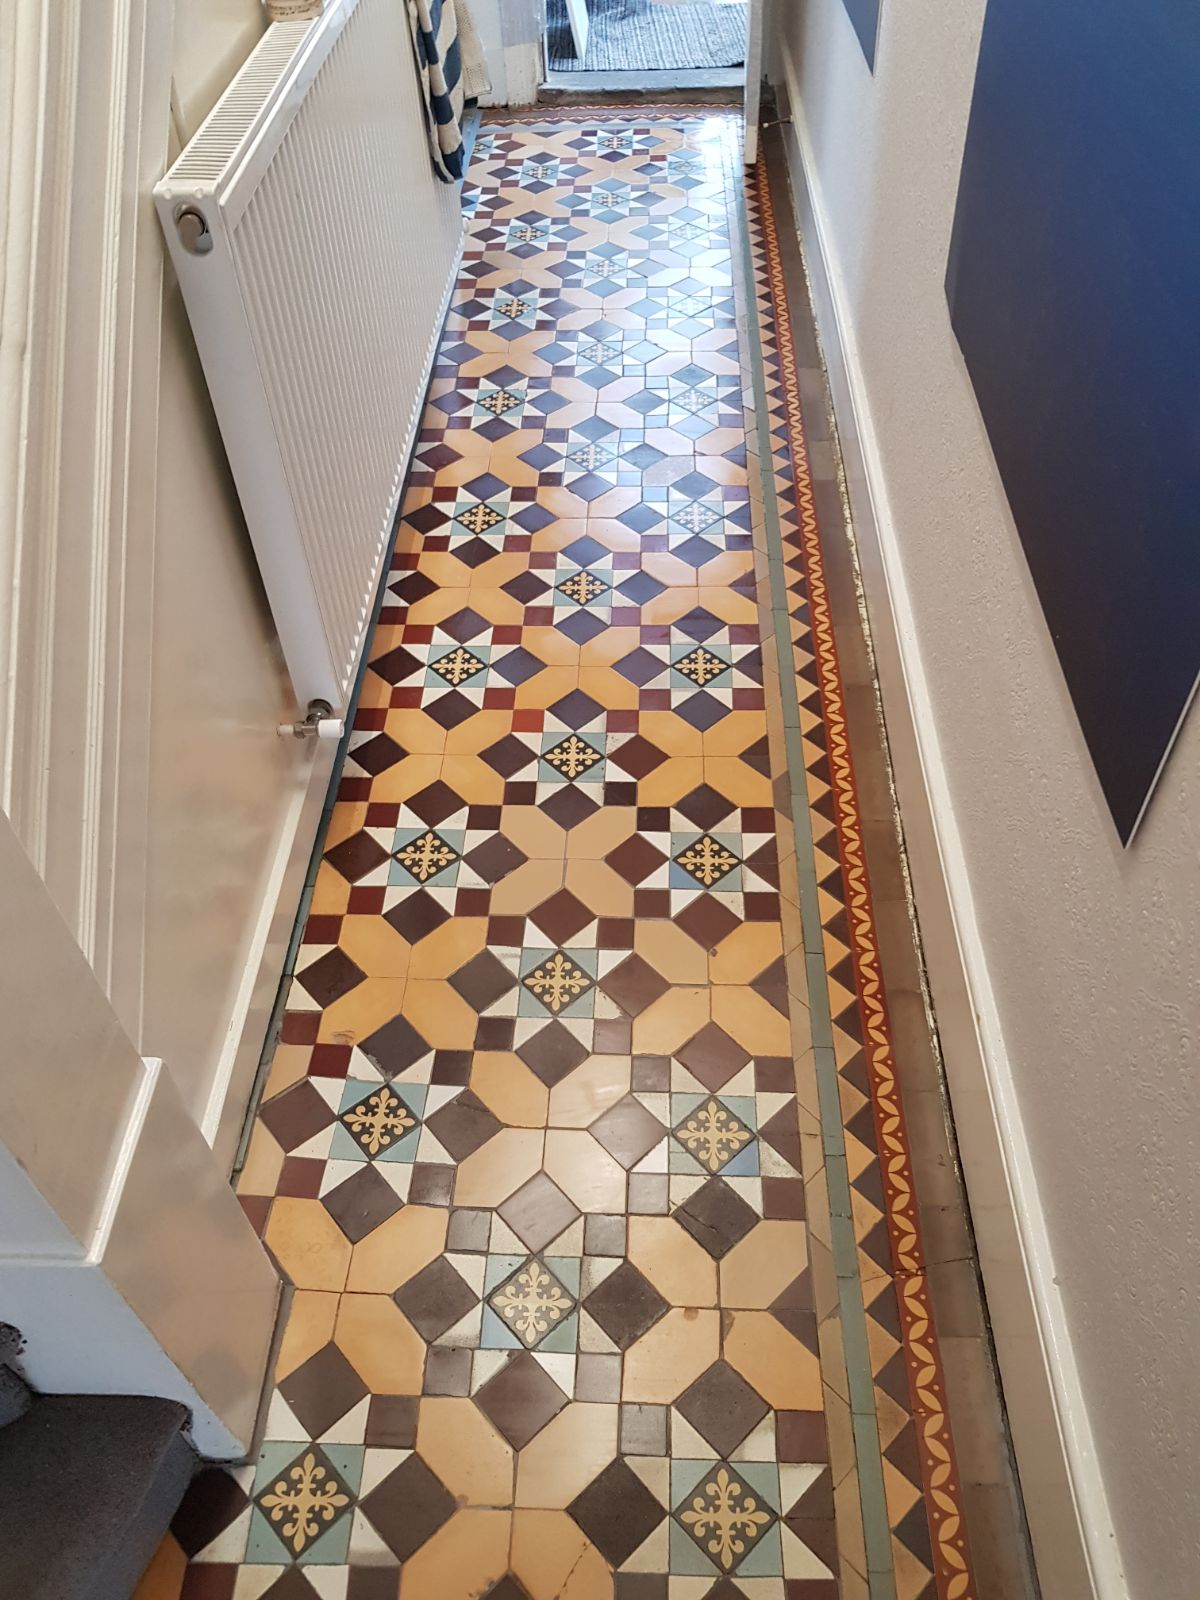 Edwardian Tiled Hallway After Restoration Finchley